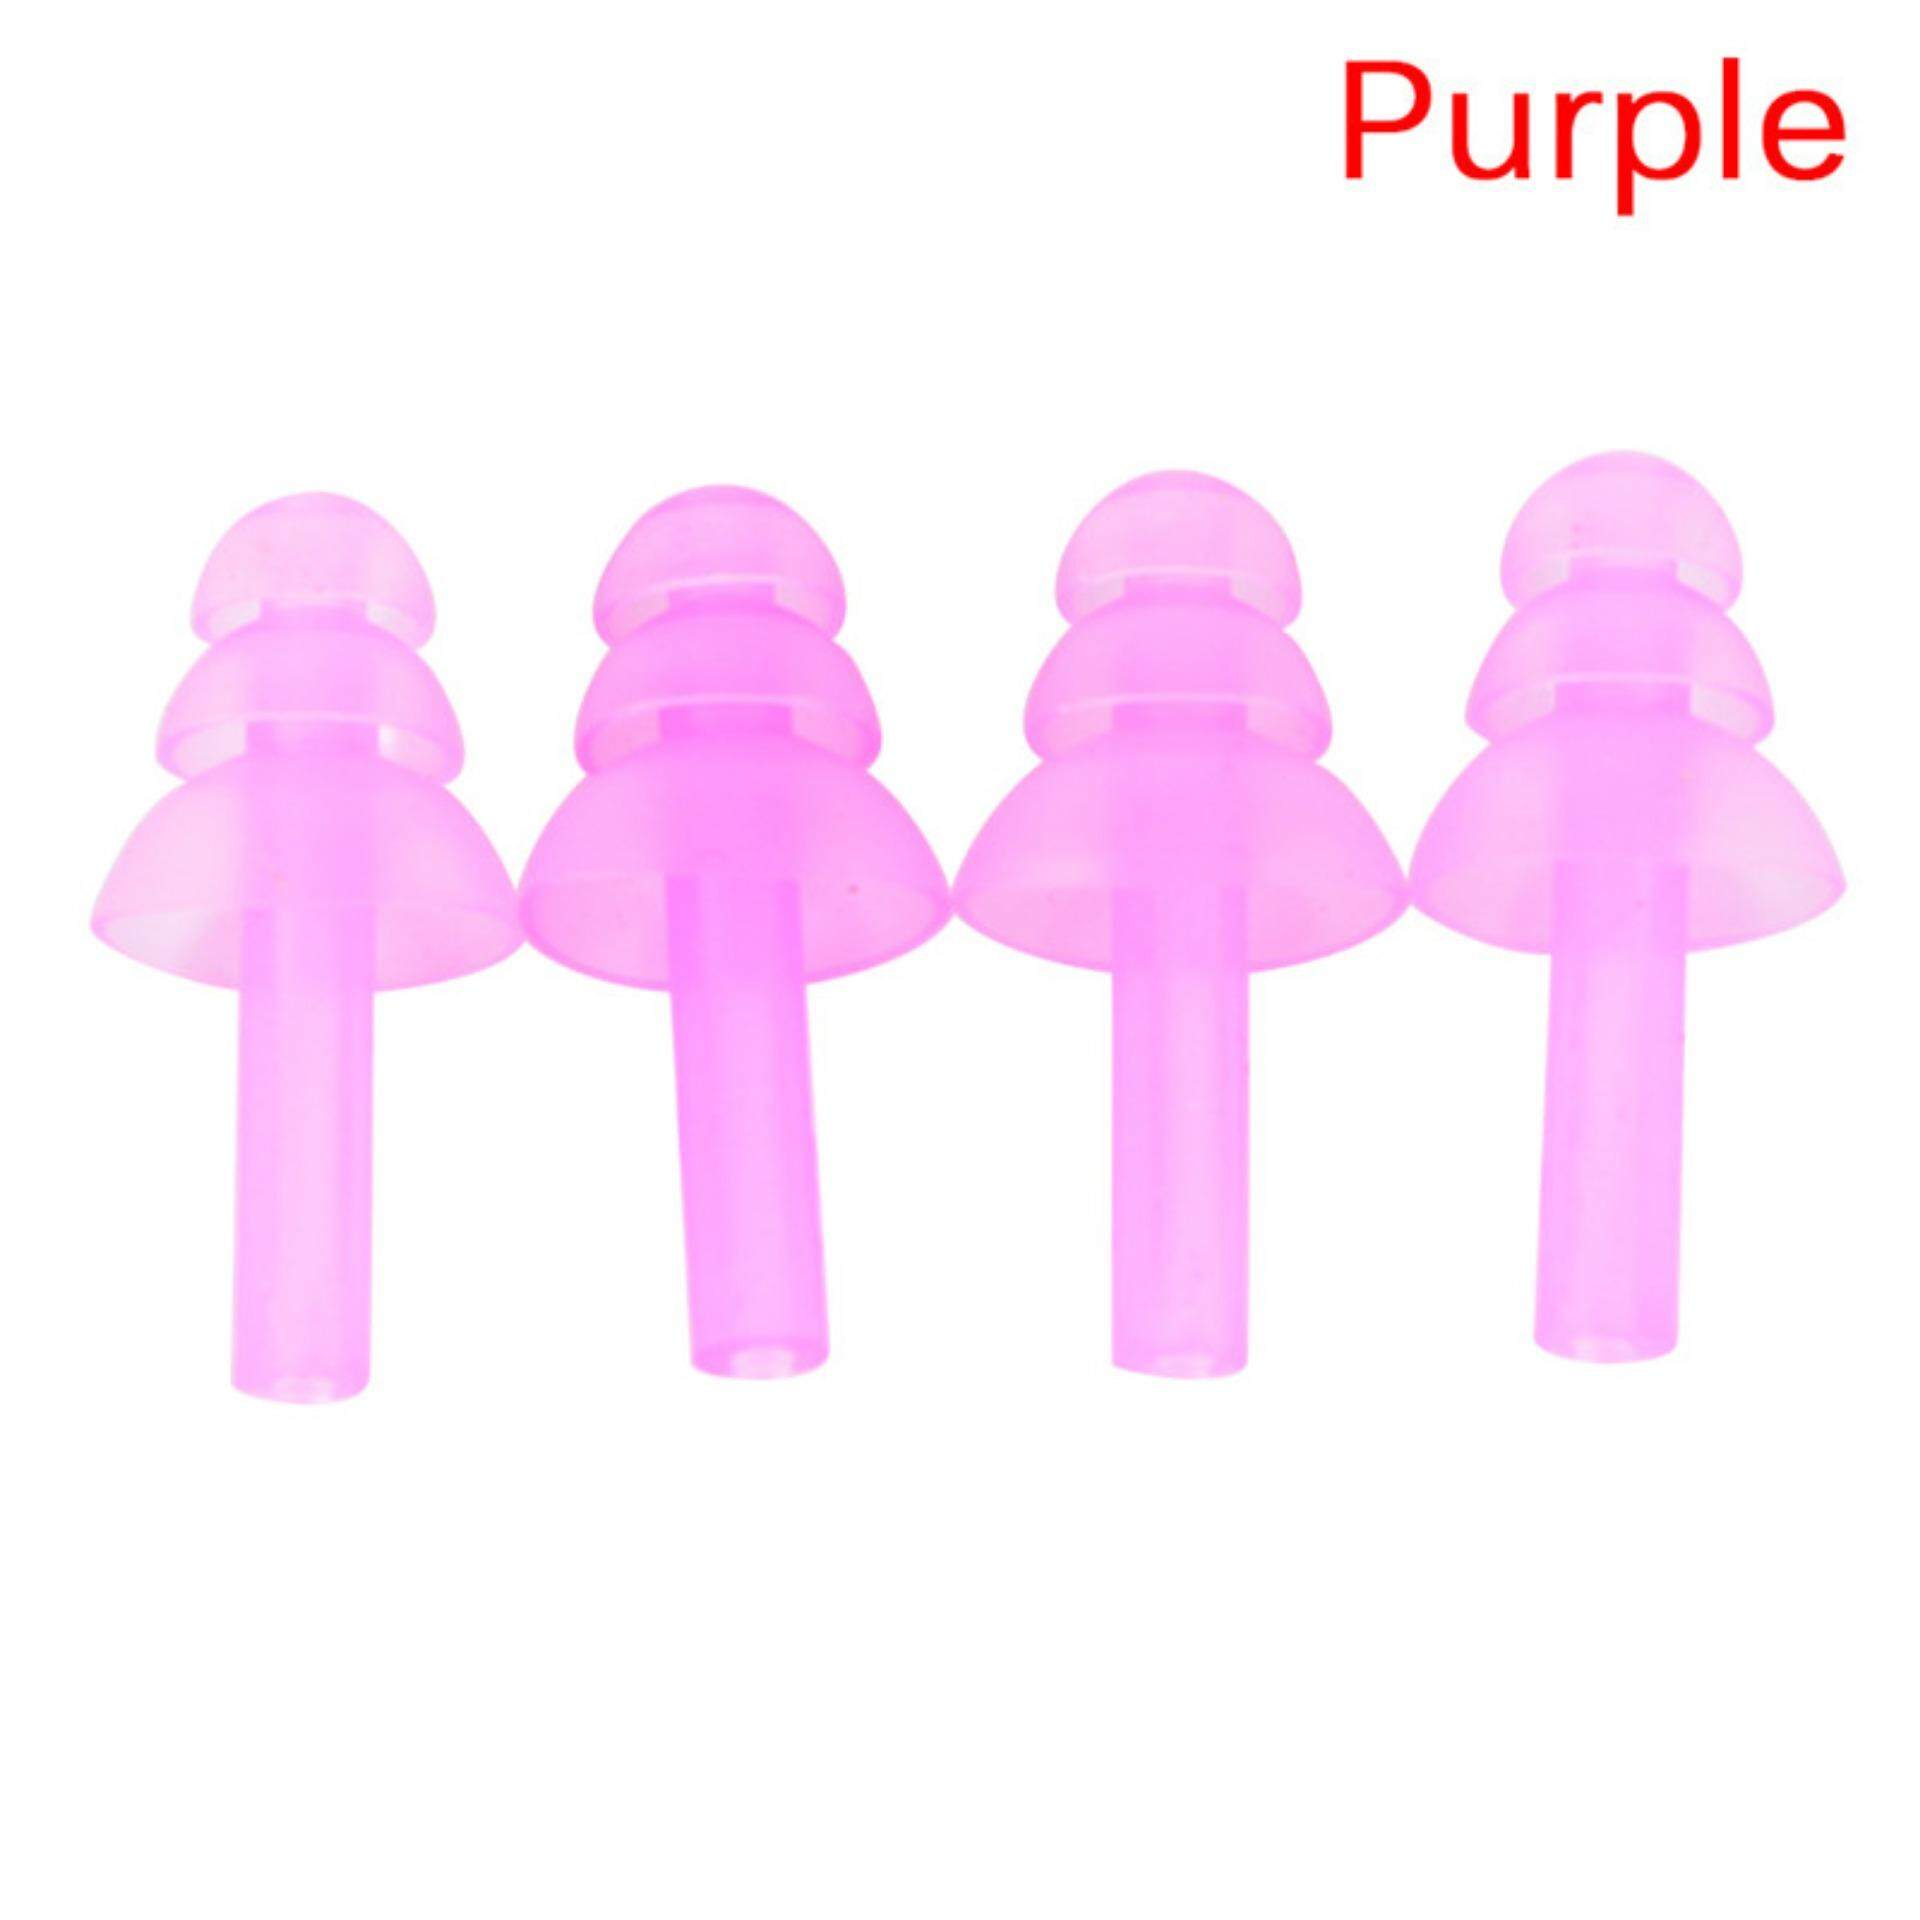 Mecola Silicone Ear Plugs Anti Noise Snore Earplugs Comfortable For Study Sleep 4pcs Purple By Mecola.